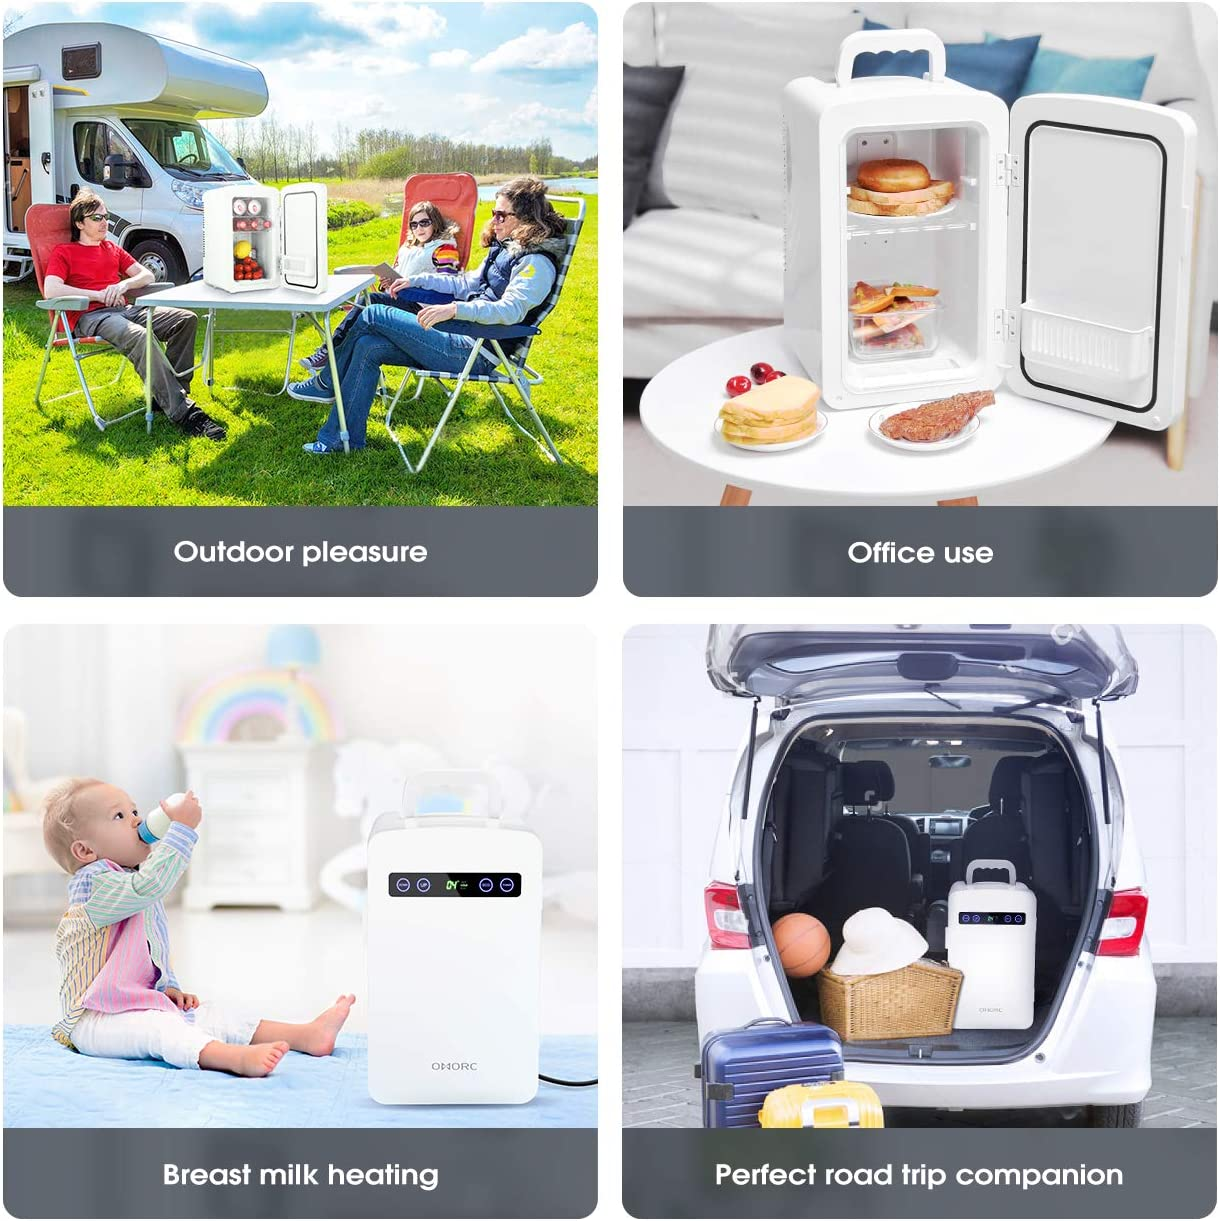 Home,Office White OMORC Mini Fridge 10L Portable Picnic Car Refrigerator with AC /& DC Adapters for Road Trip Camping Thermoelectric Cooler and Warmer with Dual-Core Cooling